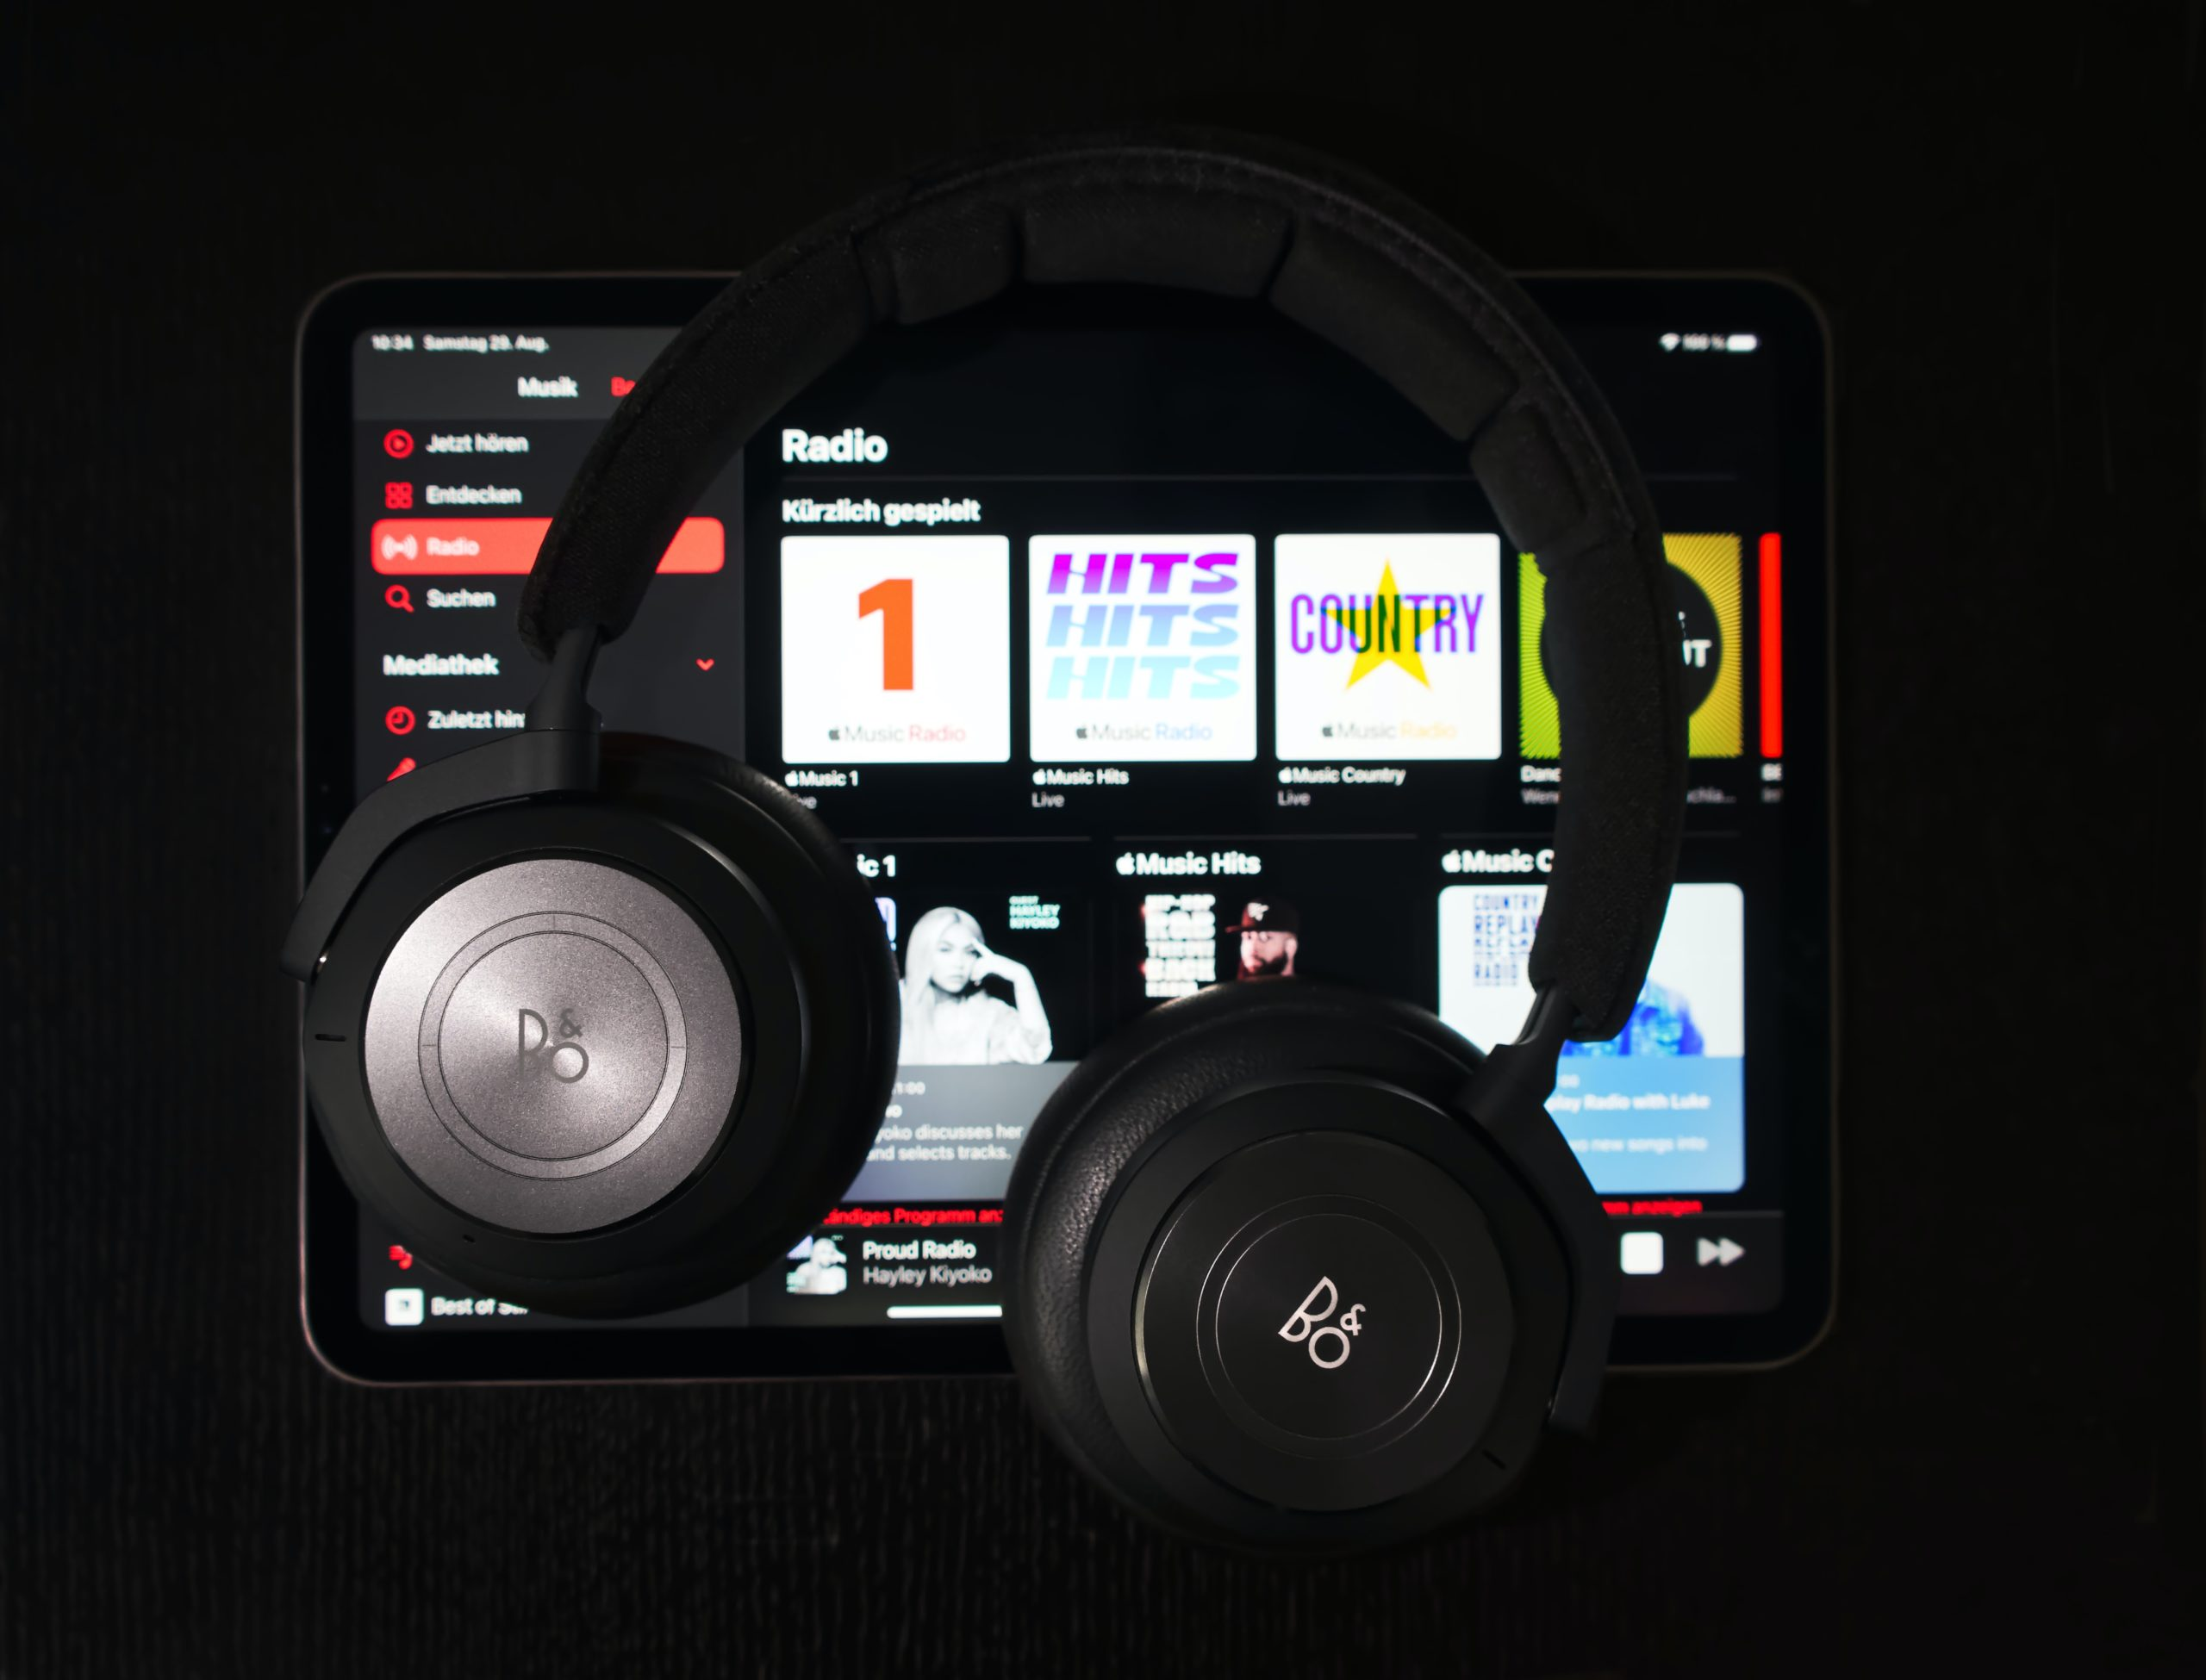 The new Moises music app, created by Geraldo Ramos and Eddie Hsu looks to revolutionize your music experience by letting you control what you hear.